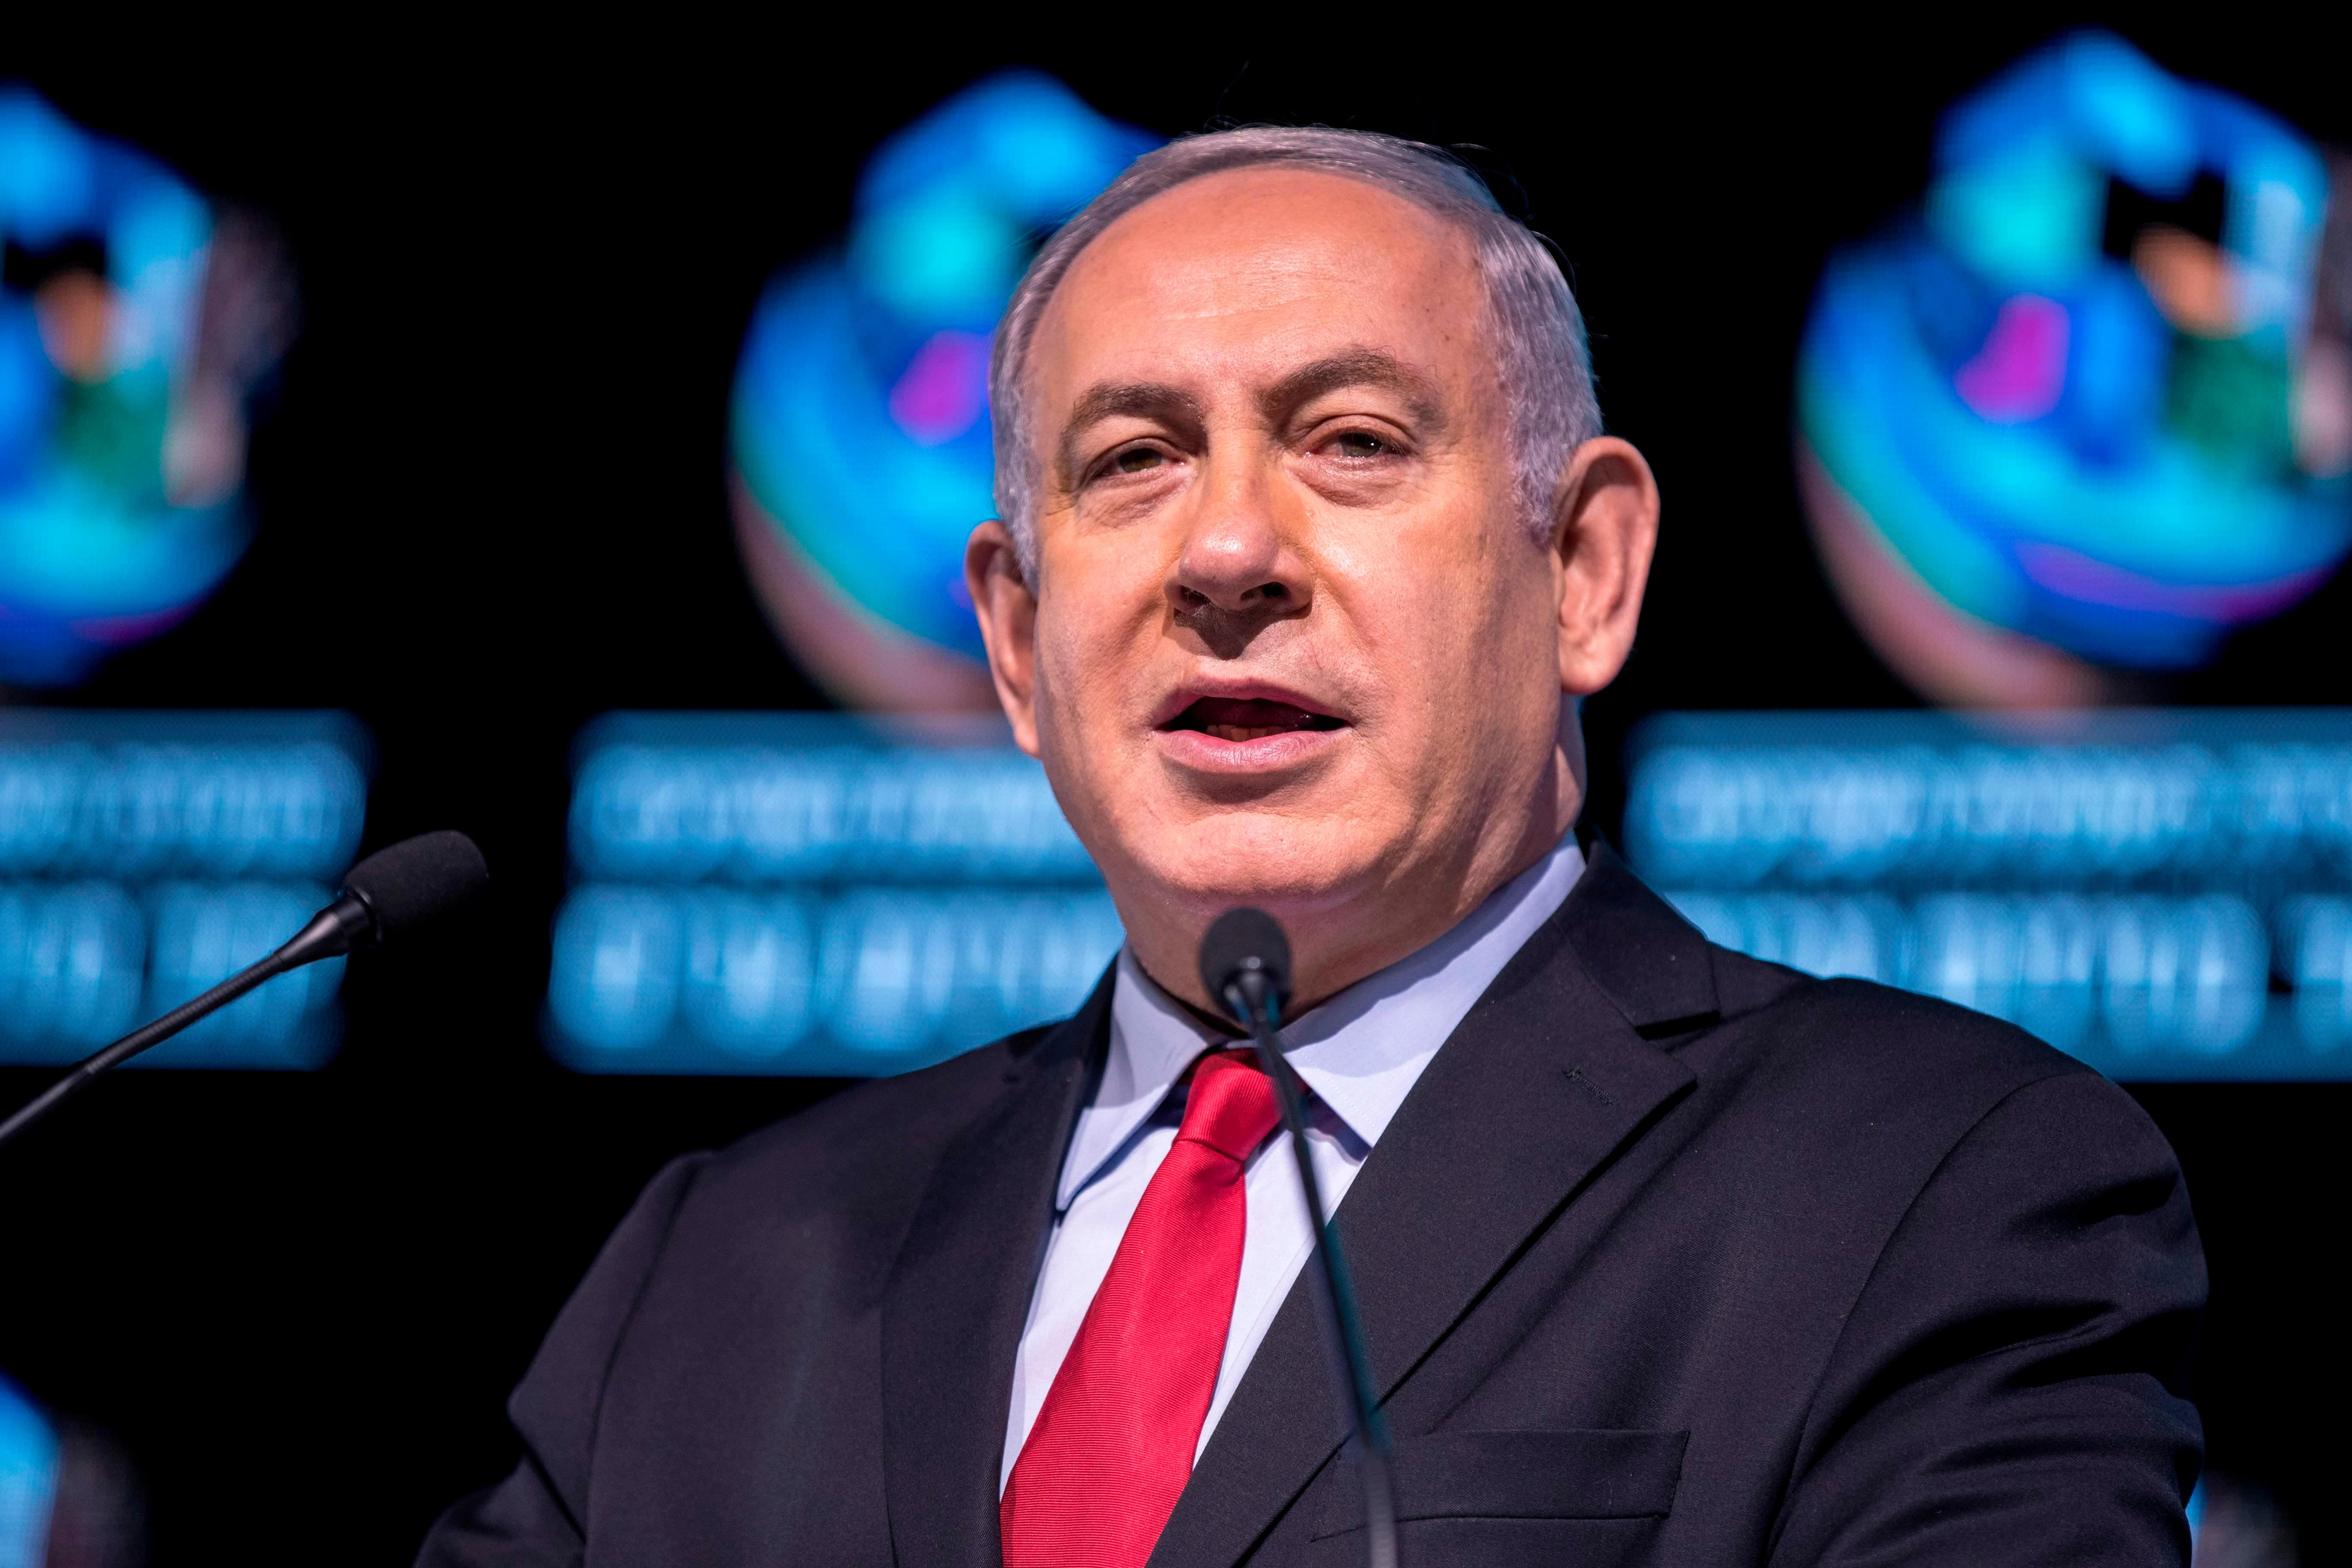 Israeli PM Benjamin Netanyahu slams years of 'baseless' conspiracies over 'slanderous' corruption claims that could force him out of office